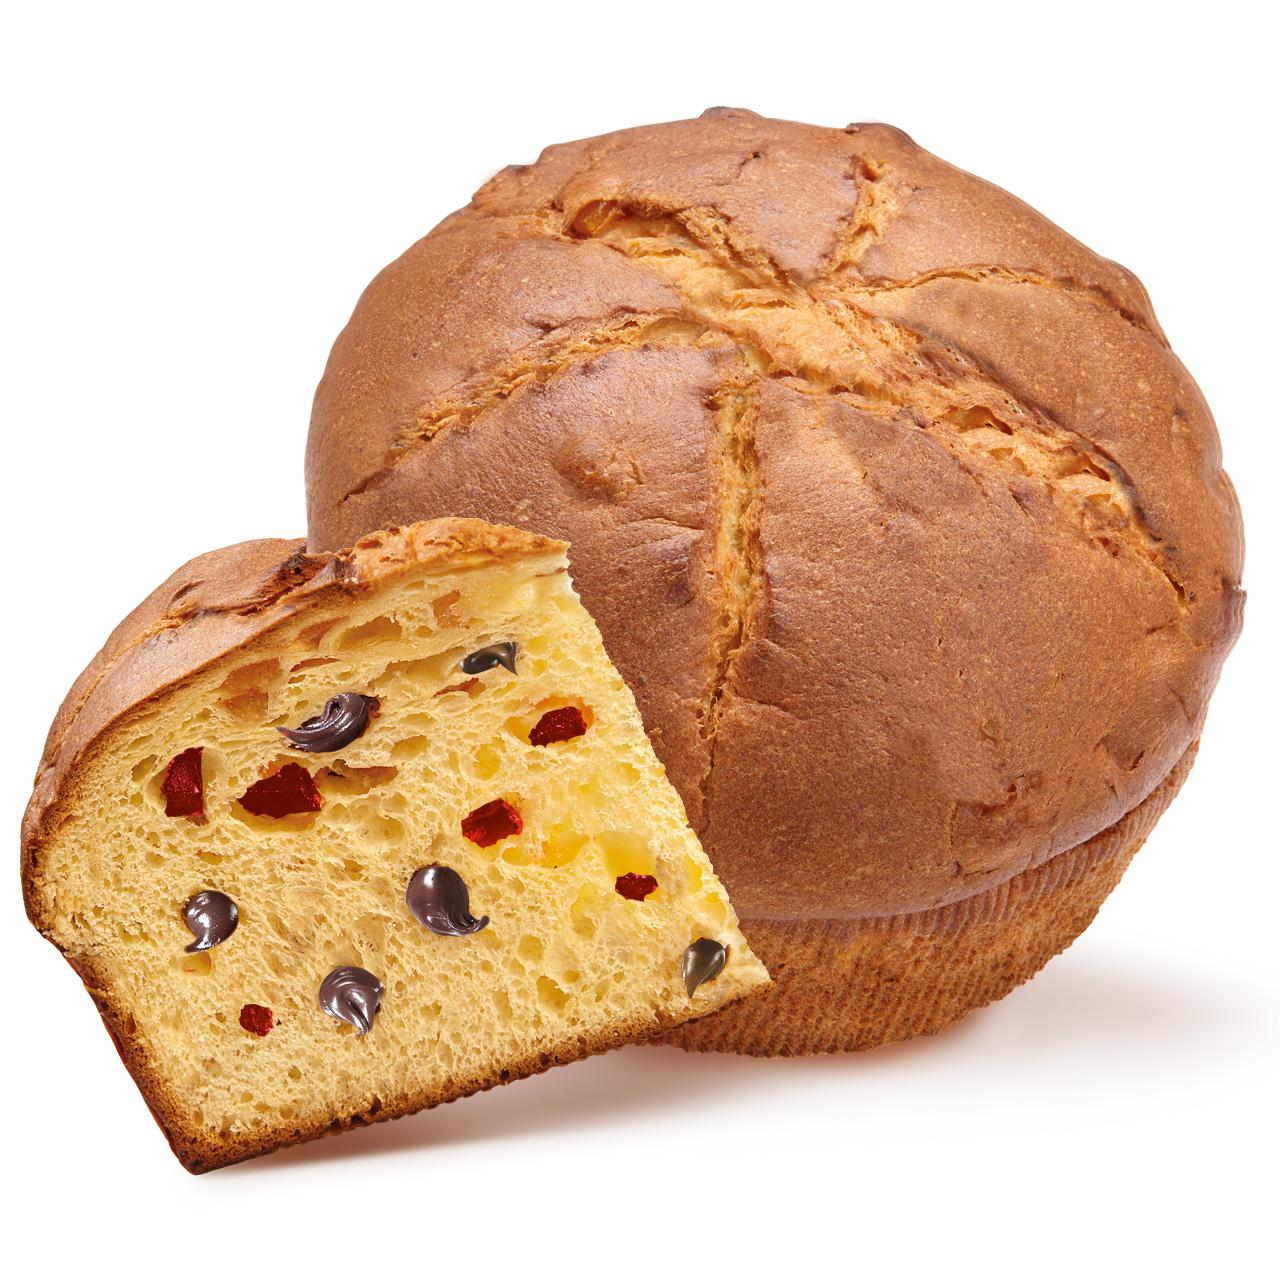 CHERRY AND CHOCOLATE ORGANIC PANETTONE